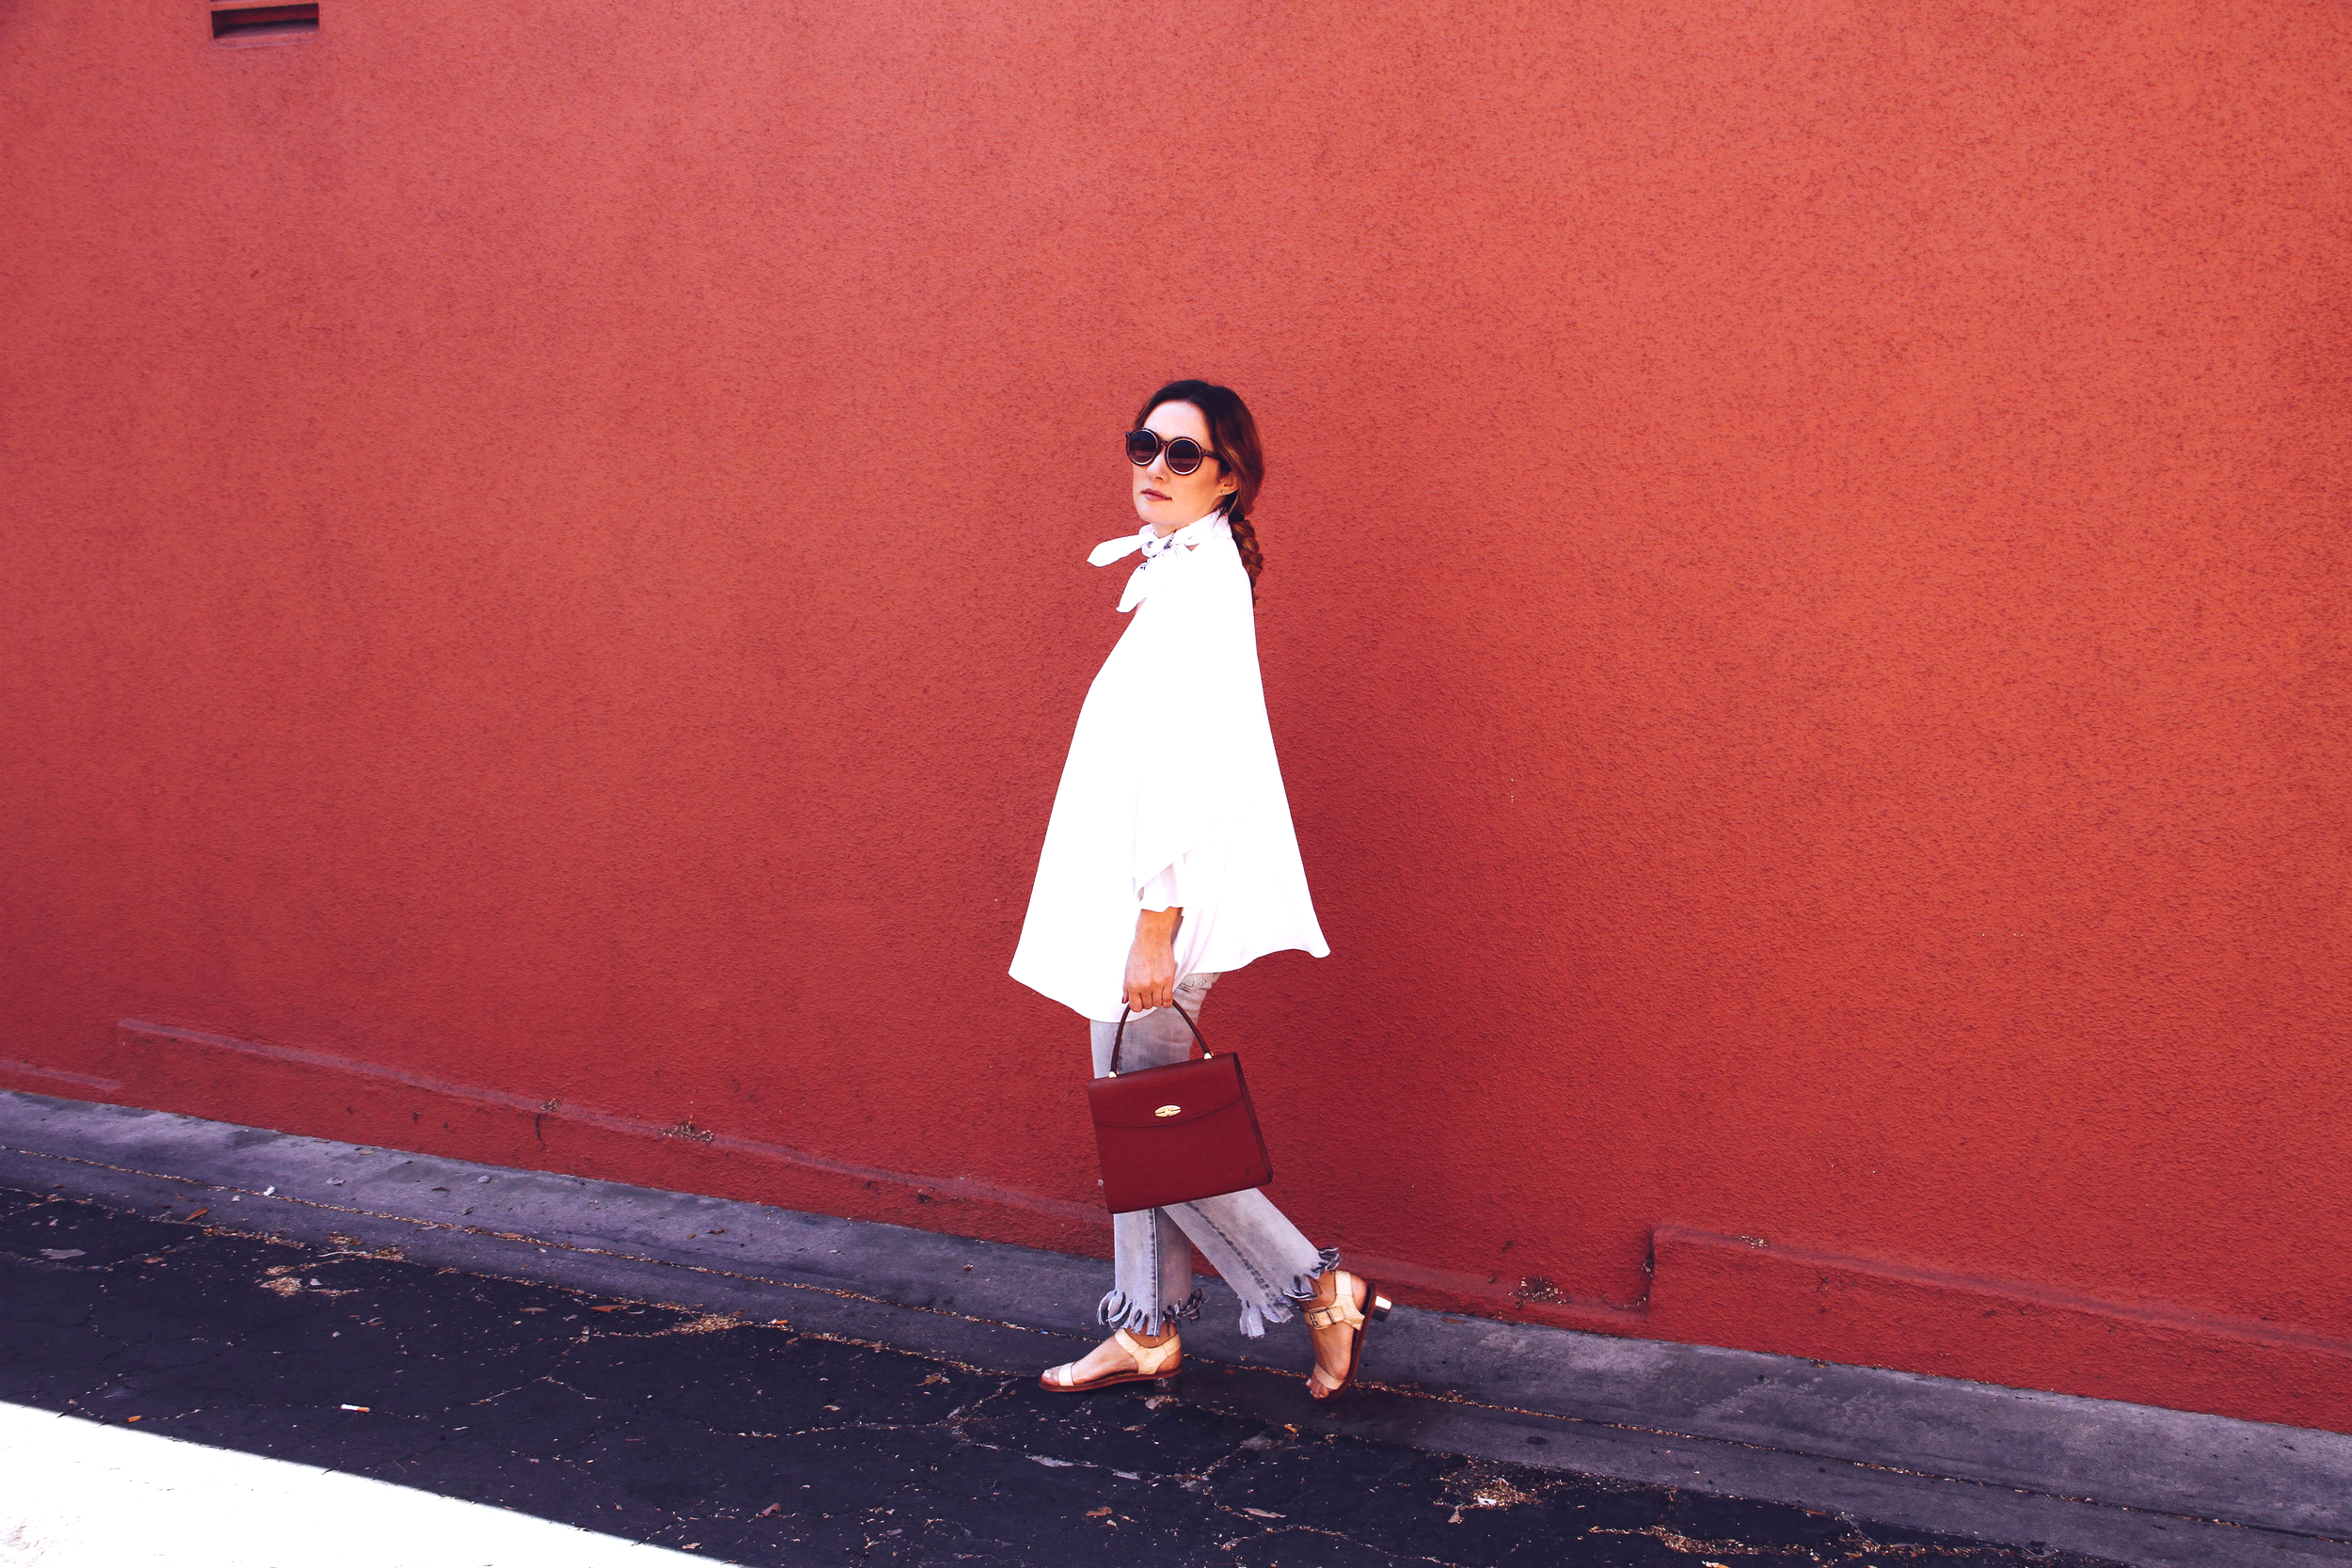 ootd street style fashion blog The Style Sauce I Love LA Silverlake